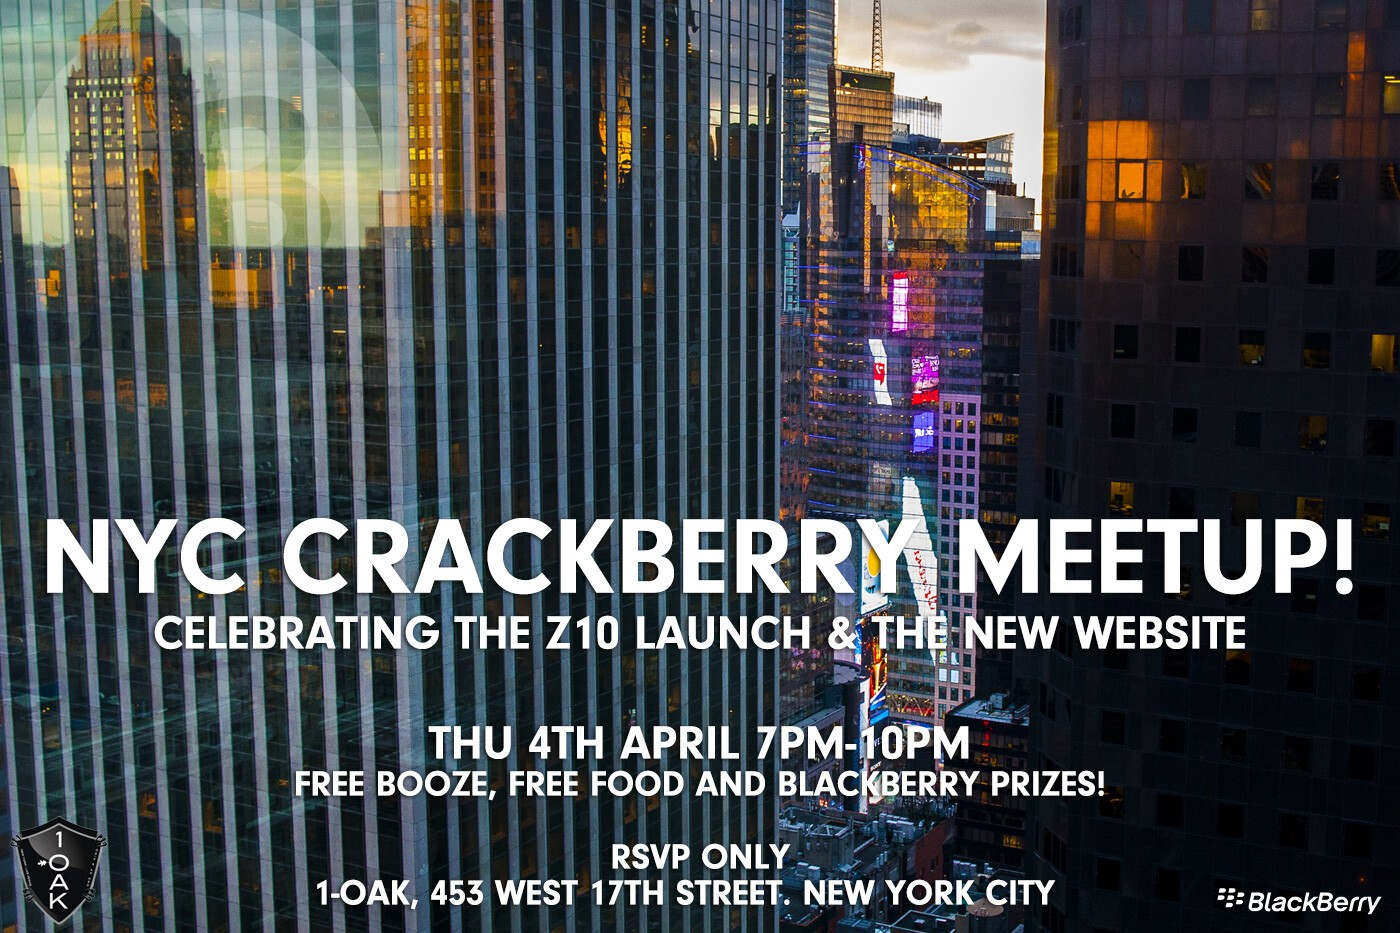 CrackBerry Meetup!